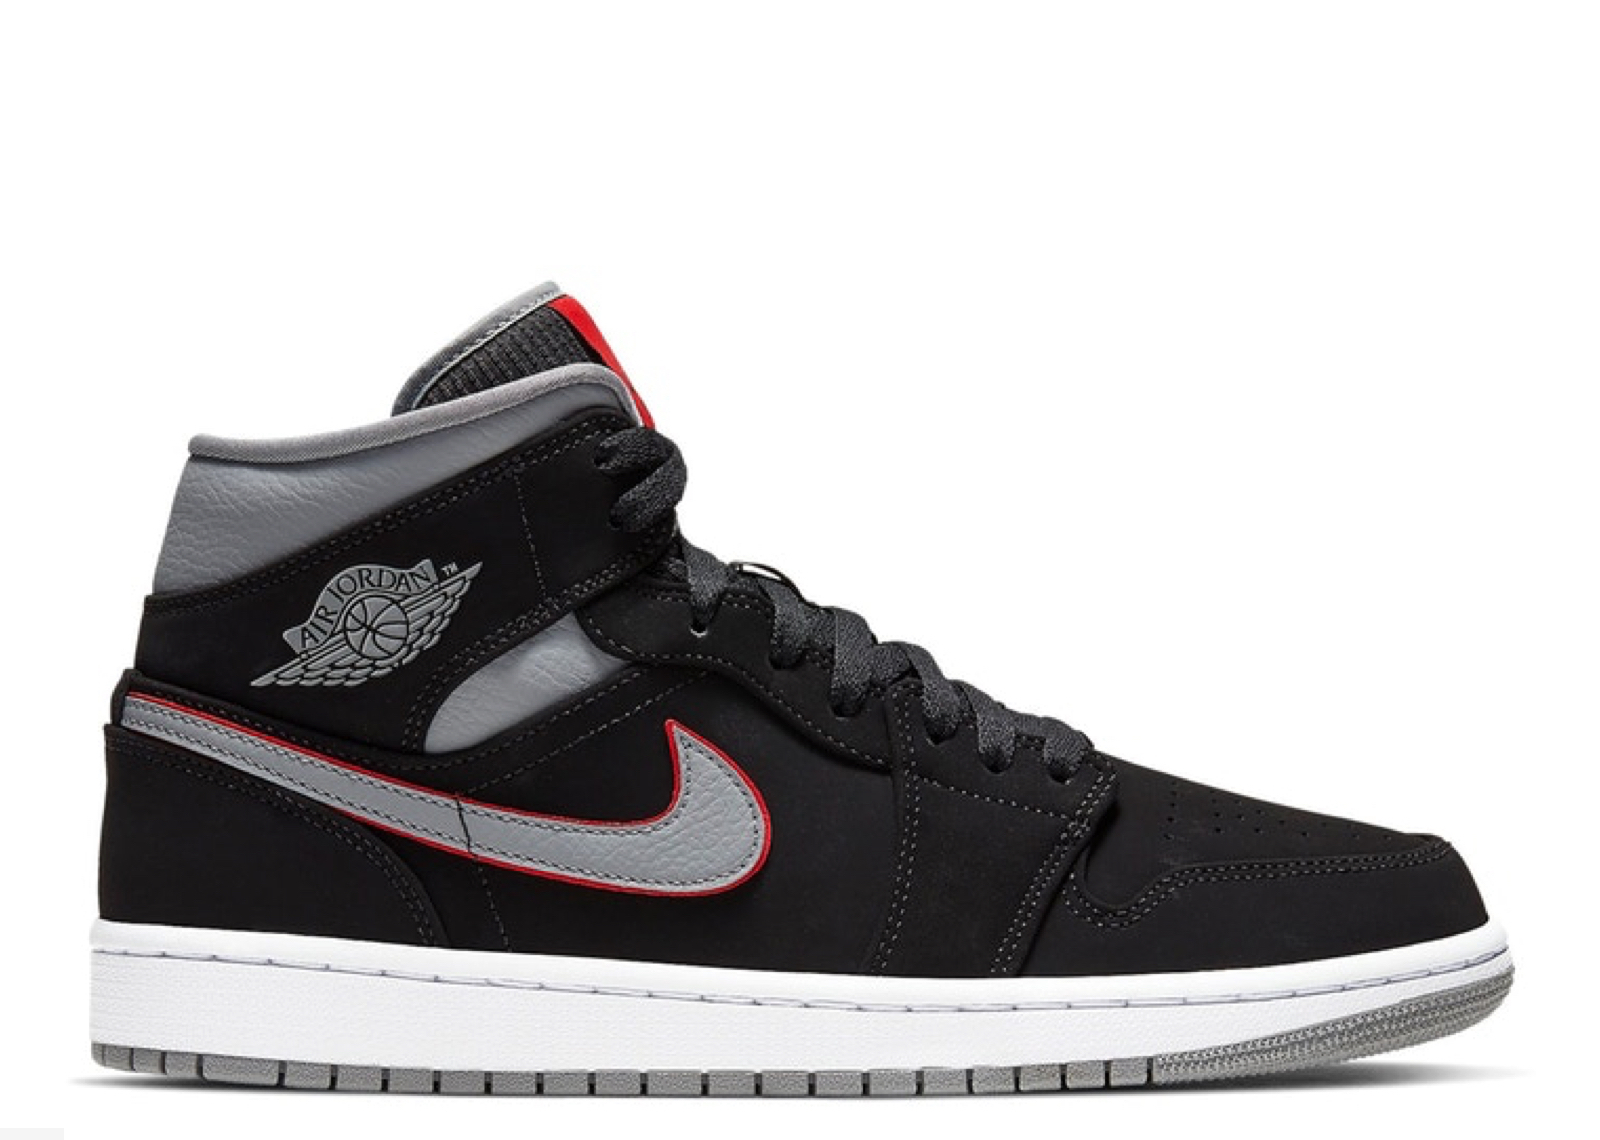 8ff3af9eb1f81 Jordan 1 Mid Black Particle Grey Gym Red